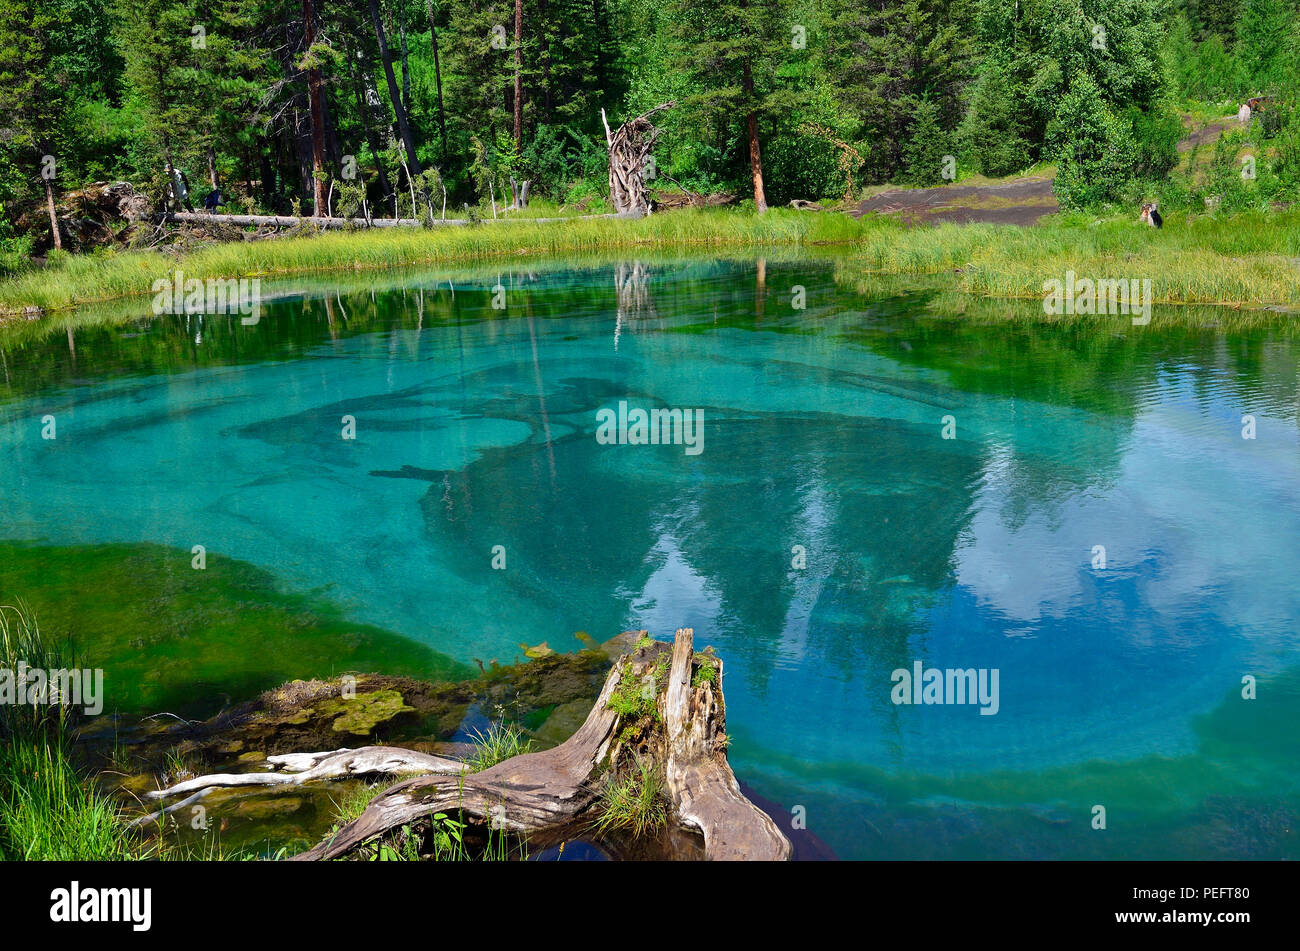 Amazing blue geyser lake in the mountains of Altai, Russia. Unique turquoise lake with crystal clear water and oval circular divorces, which all the t - Stock Image